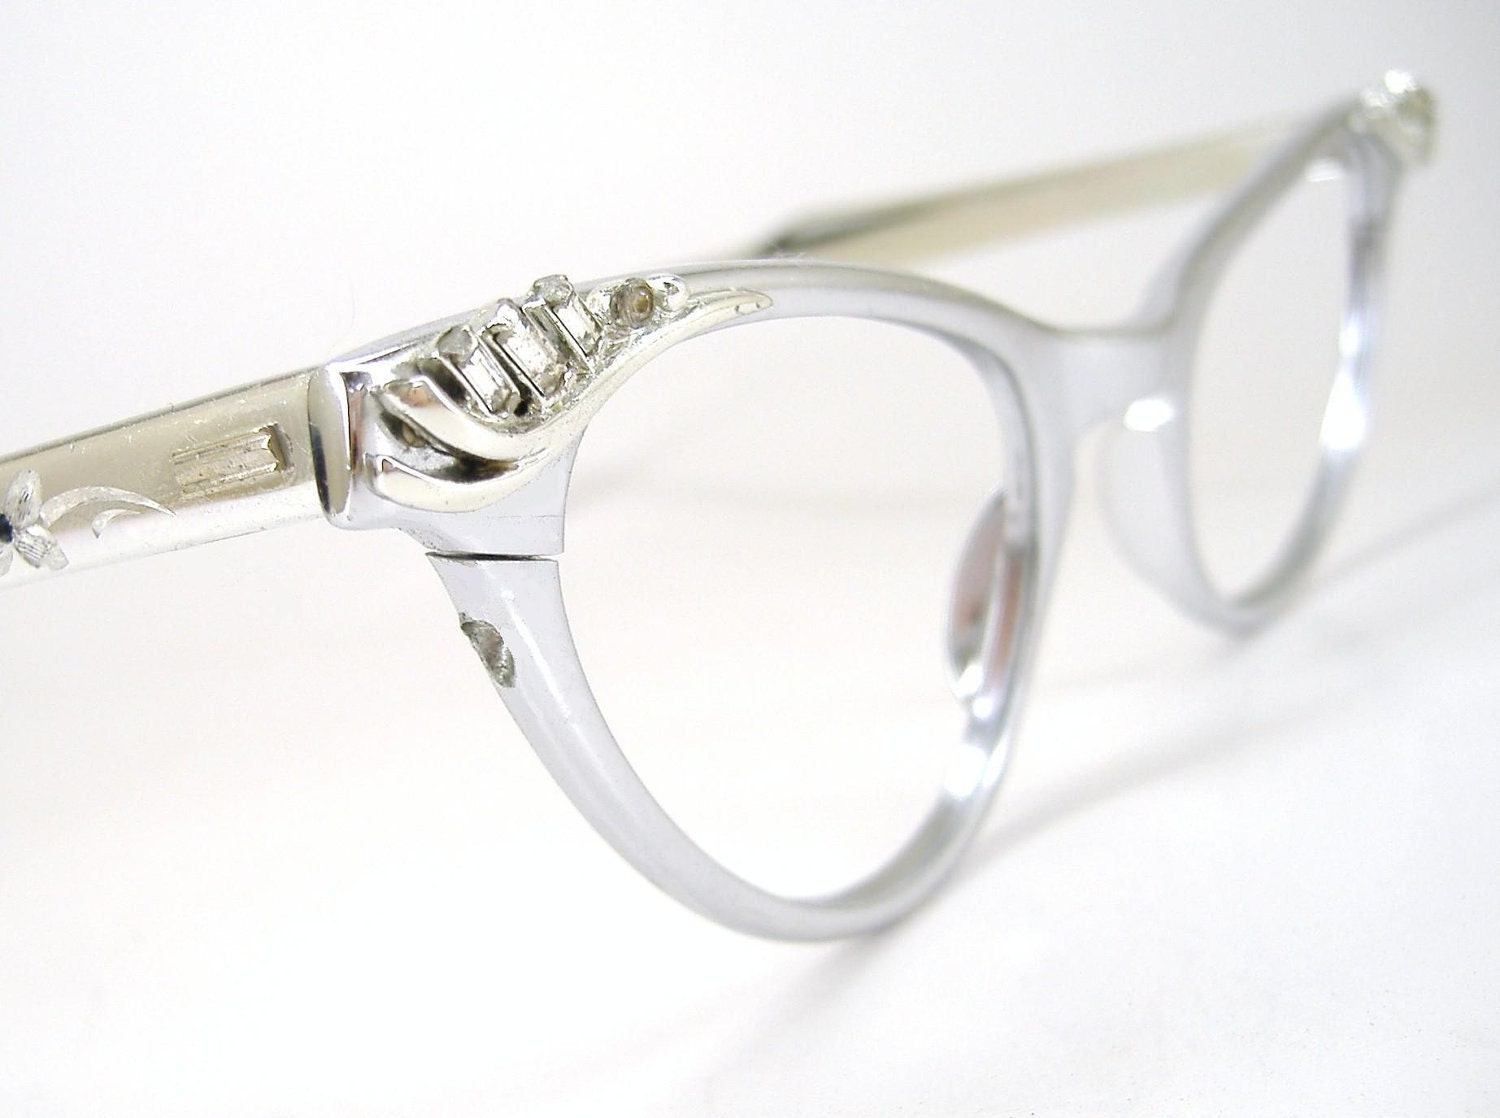 Vintage Rhinestone Cat Eye Glasses Eyeglasses or Sunglasses